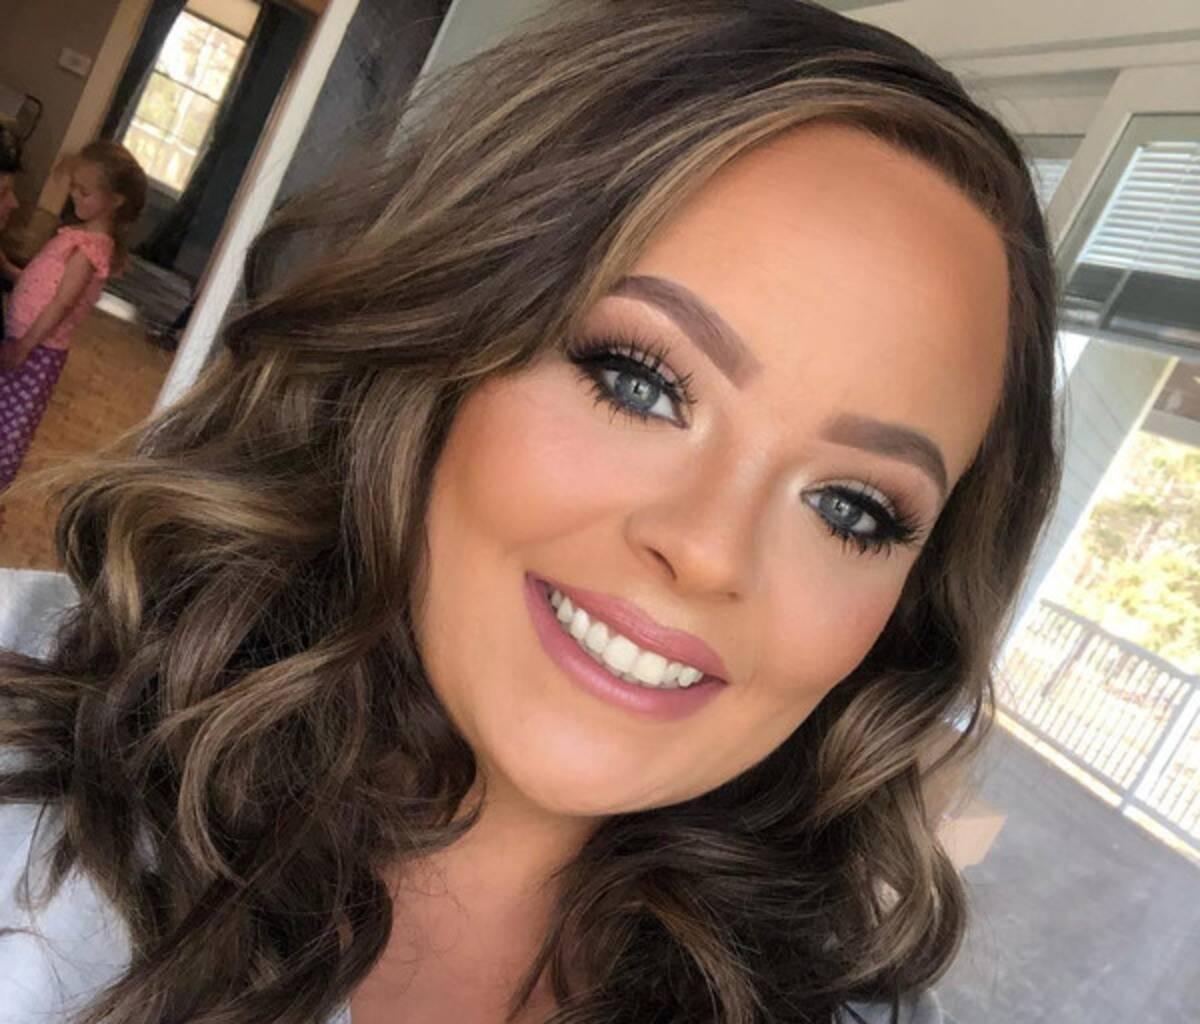 Catelynn Lowell Opens Up About Recent Miscarriage